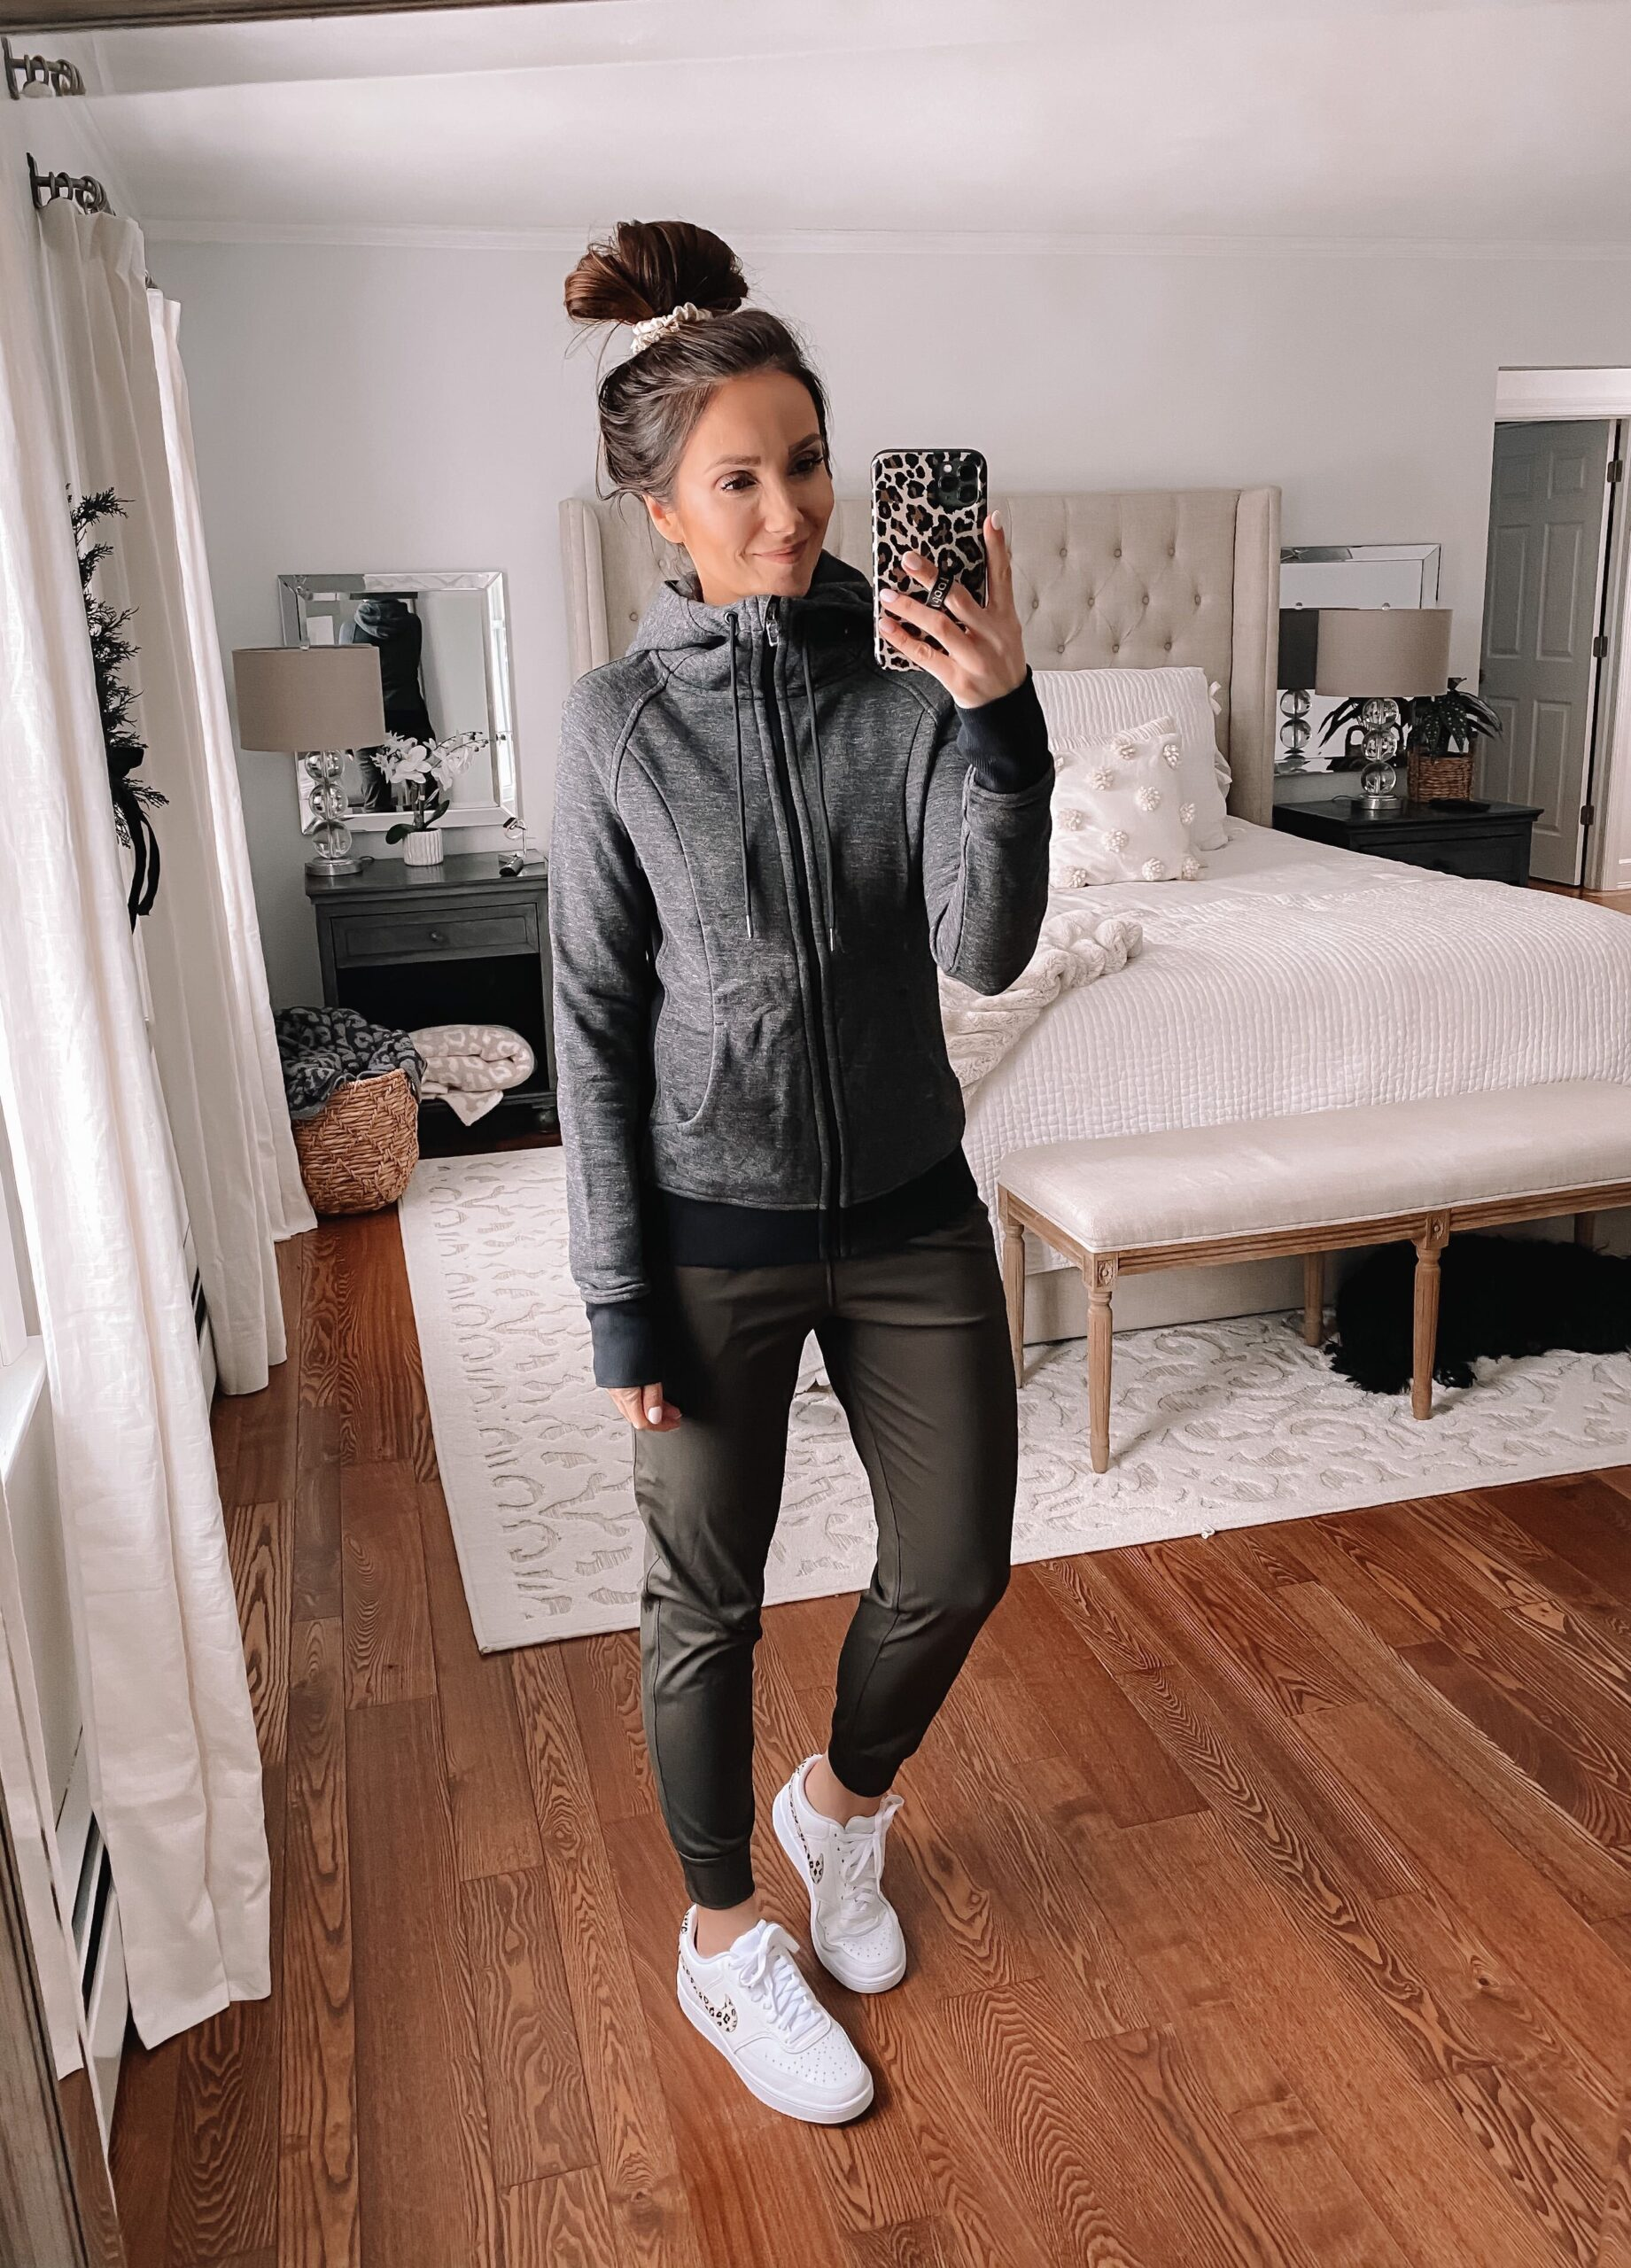 amazon workout hoodie, amazon athleisure